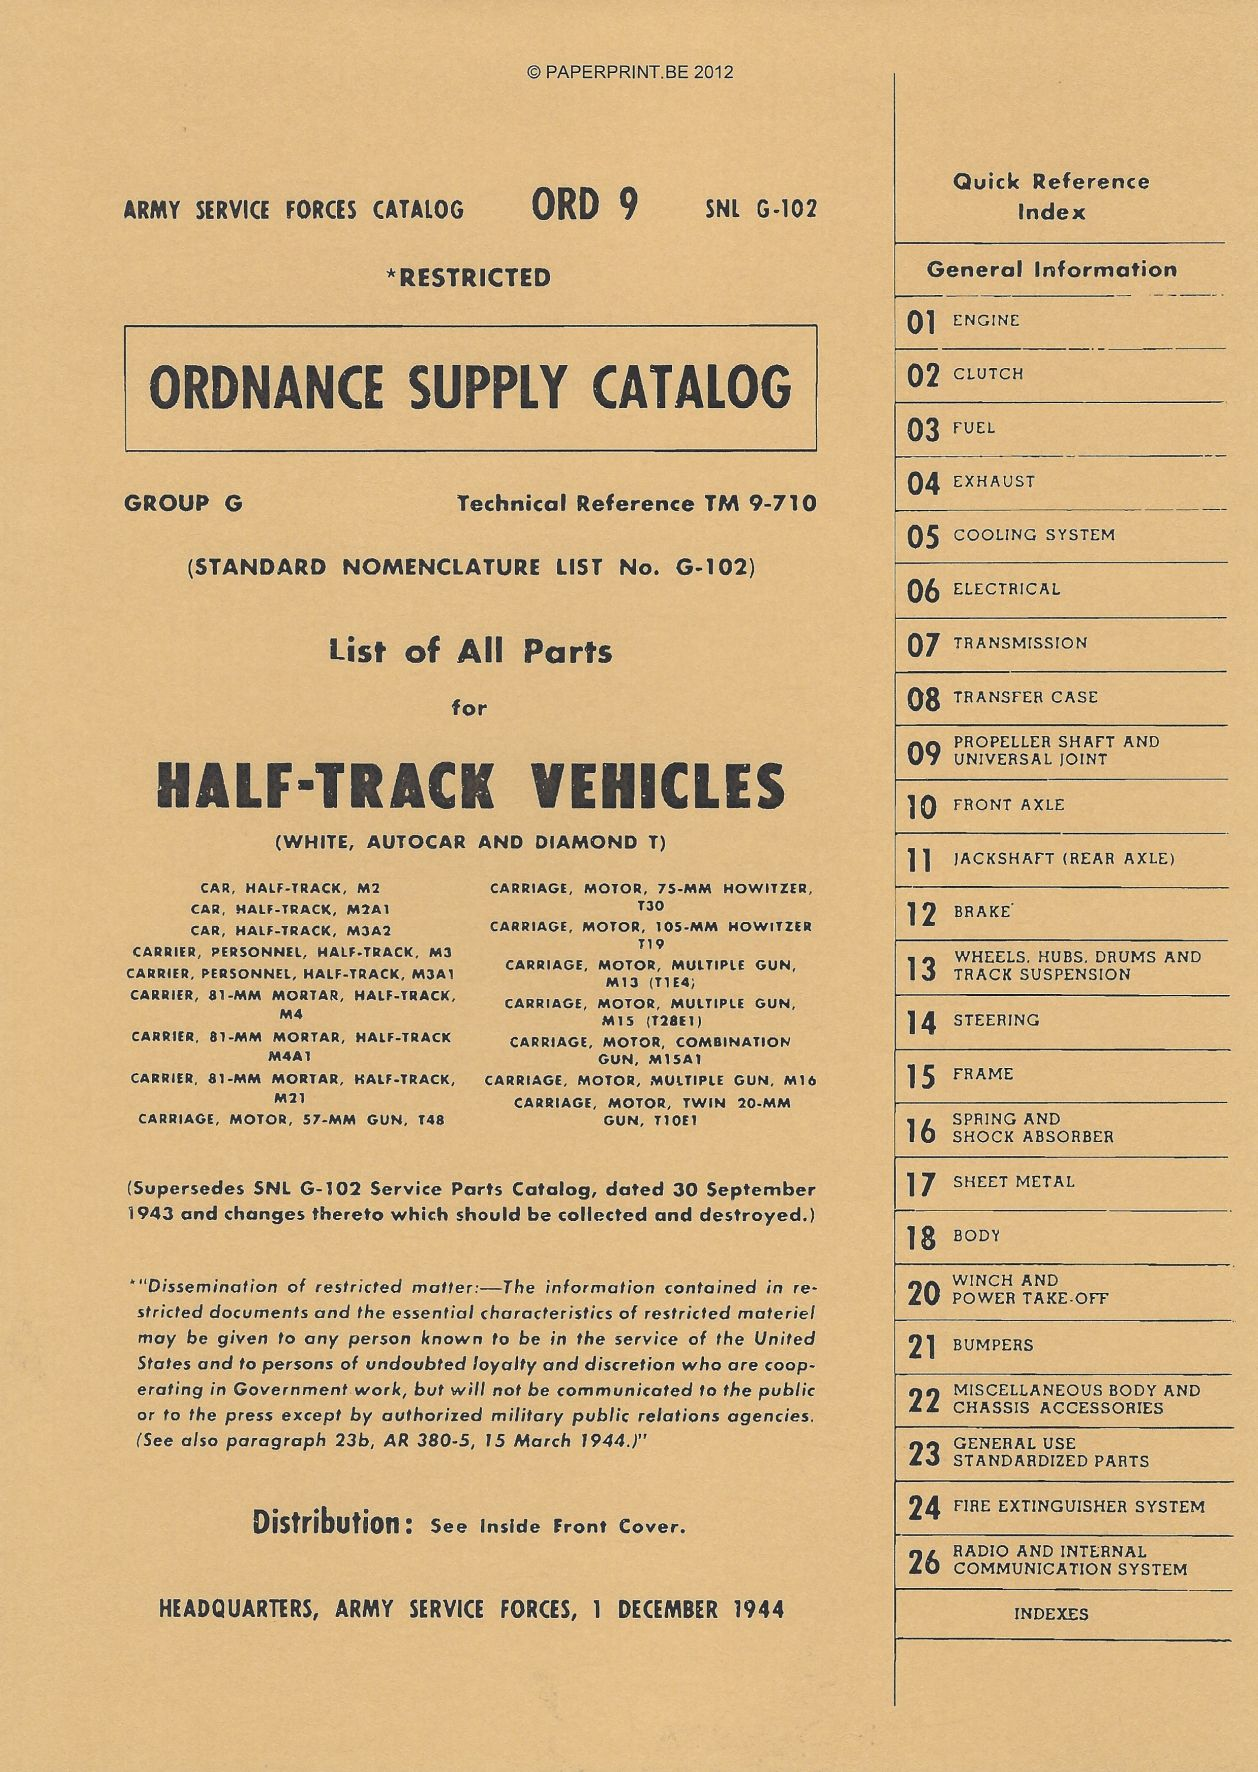 SNL G-102 US PARTS LIST FOR HALF-TRACK VEHICLES (WHITE, AUTOCAR AND DIAMOND T)